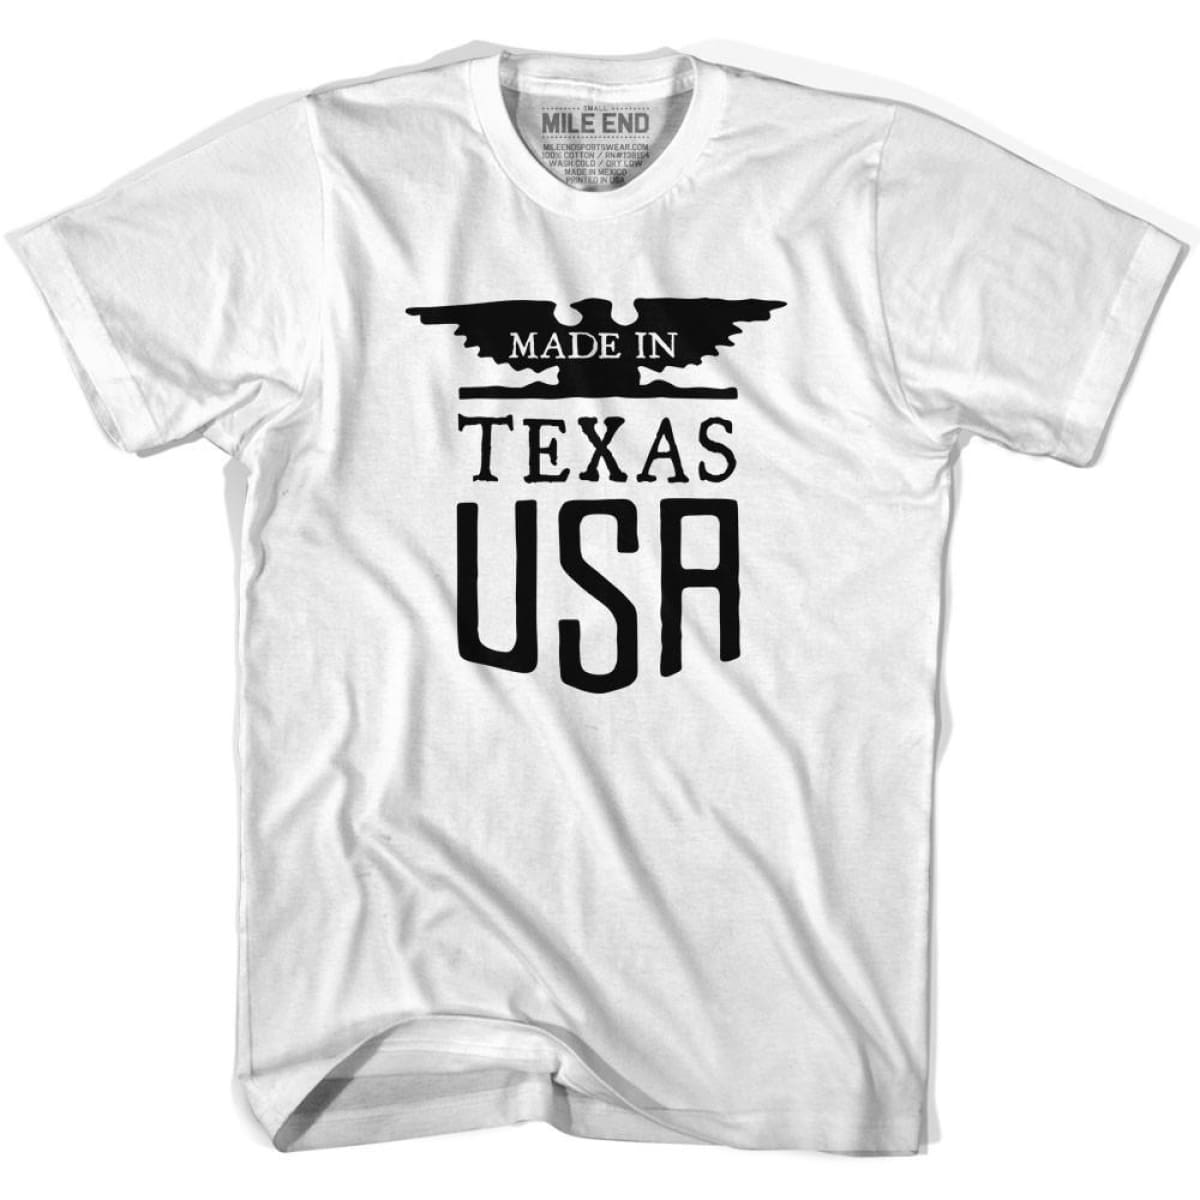 Texas Vintage Eagle T-shirt - White / Youth X-Small - Made in Eagle